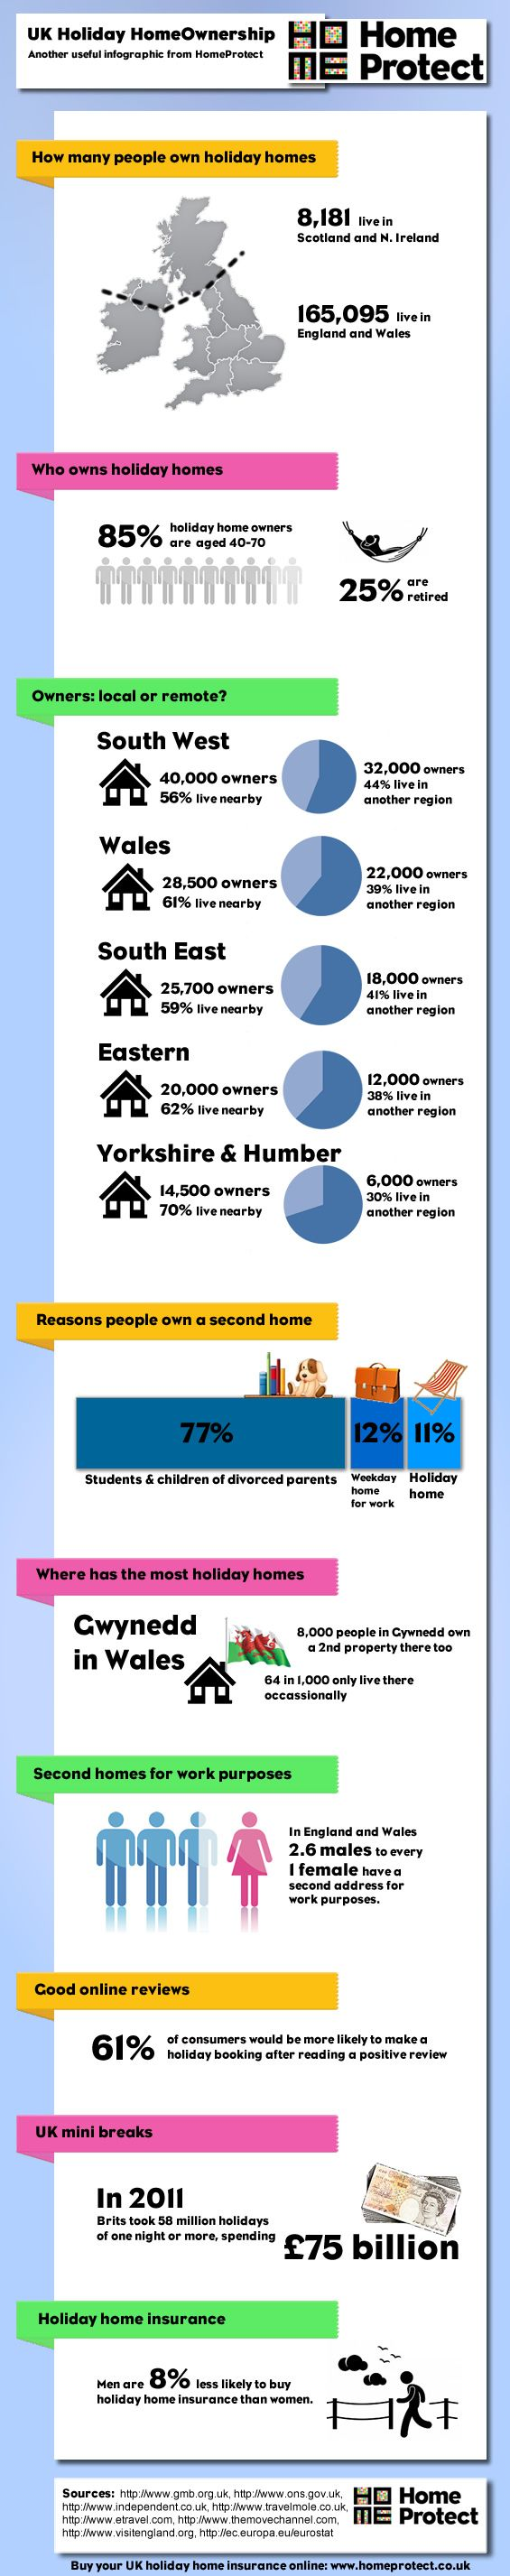 UK Holiday Home Ownership #Infographic